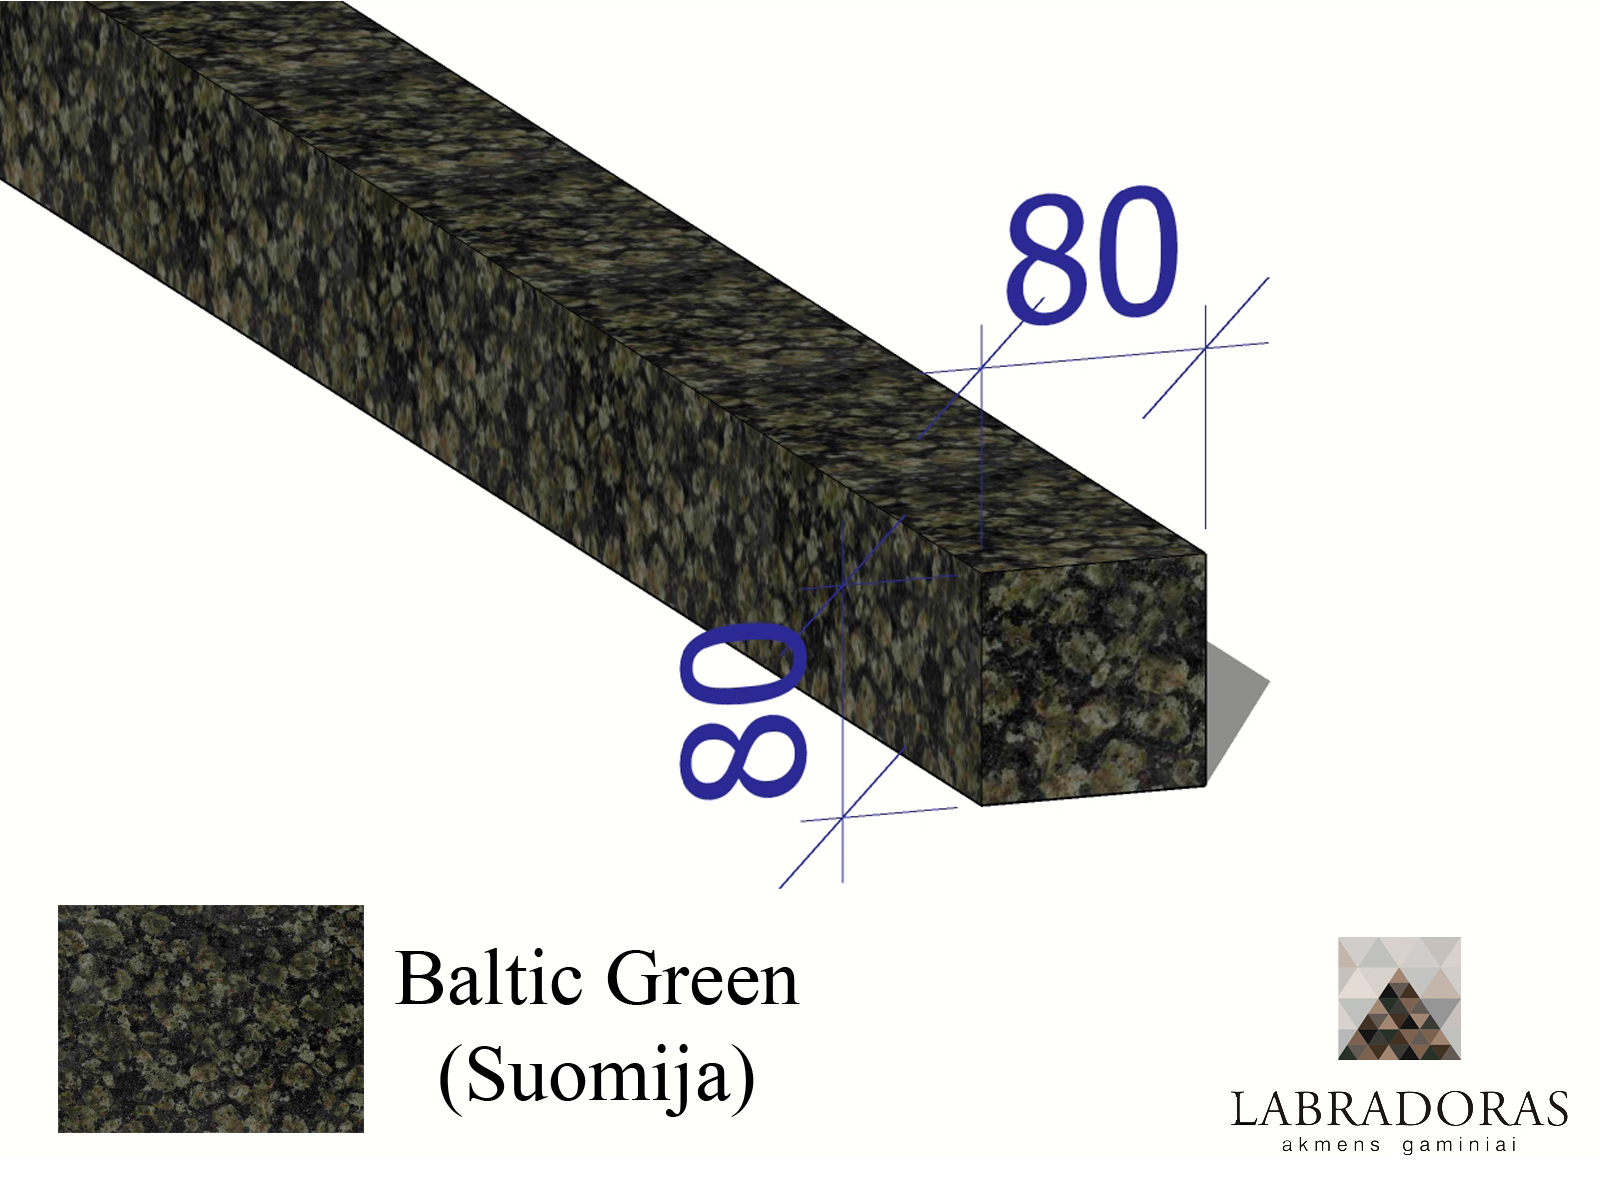 BALTIC GREEN TVO